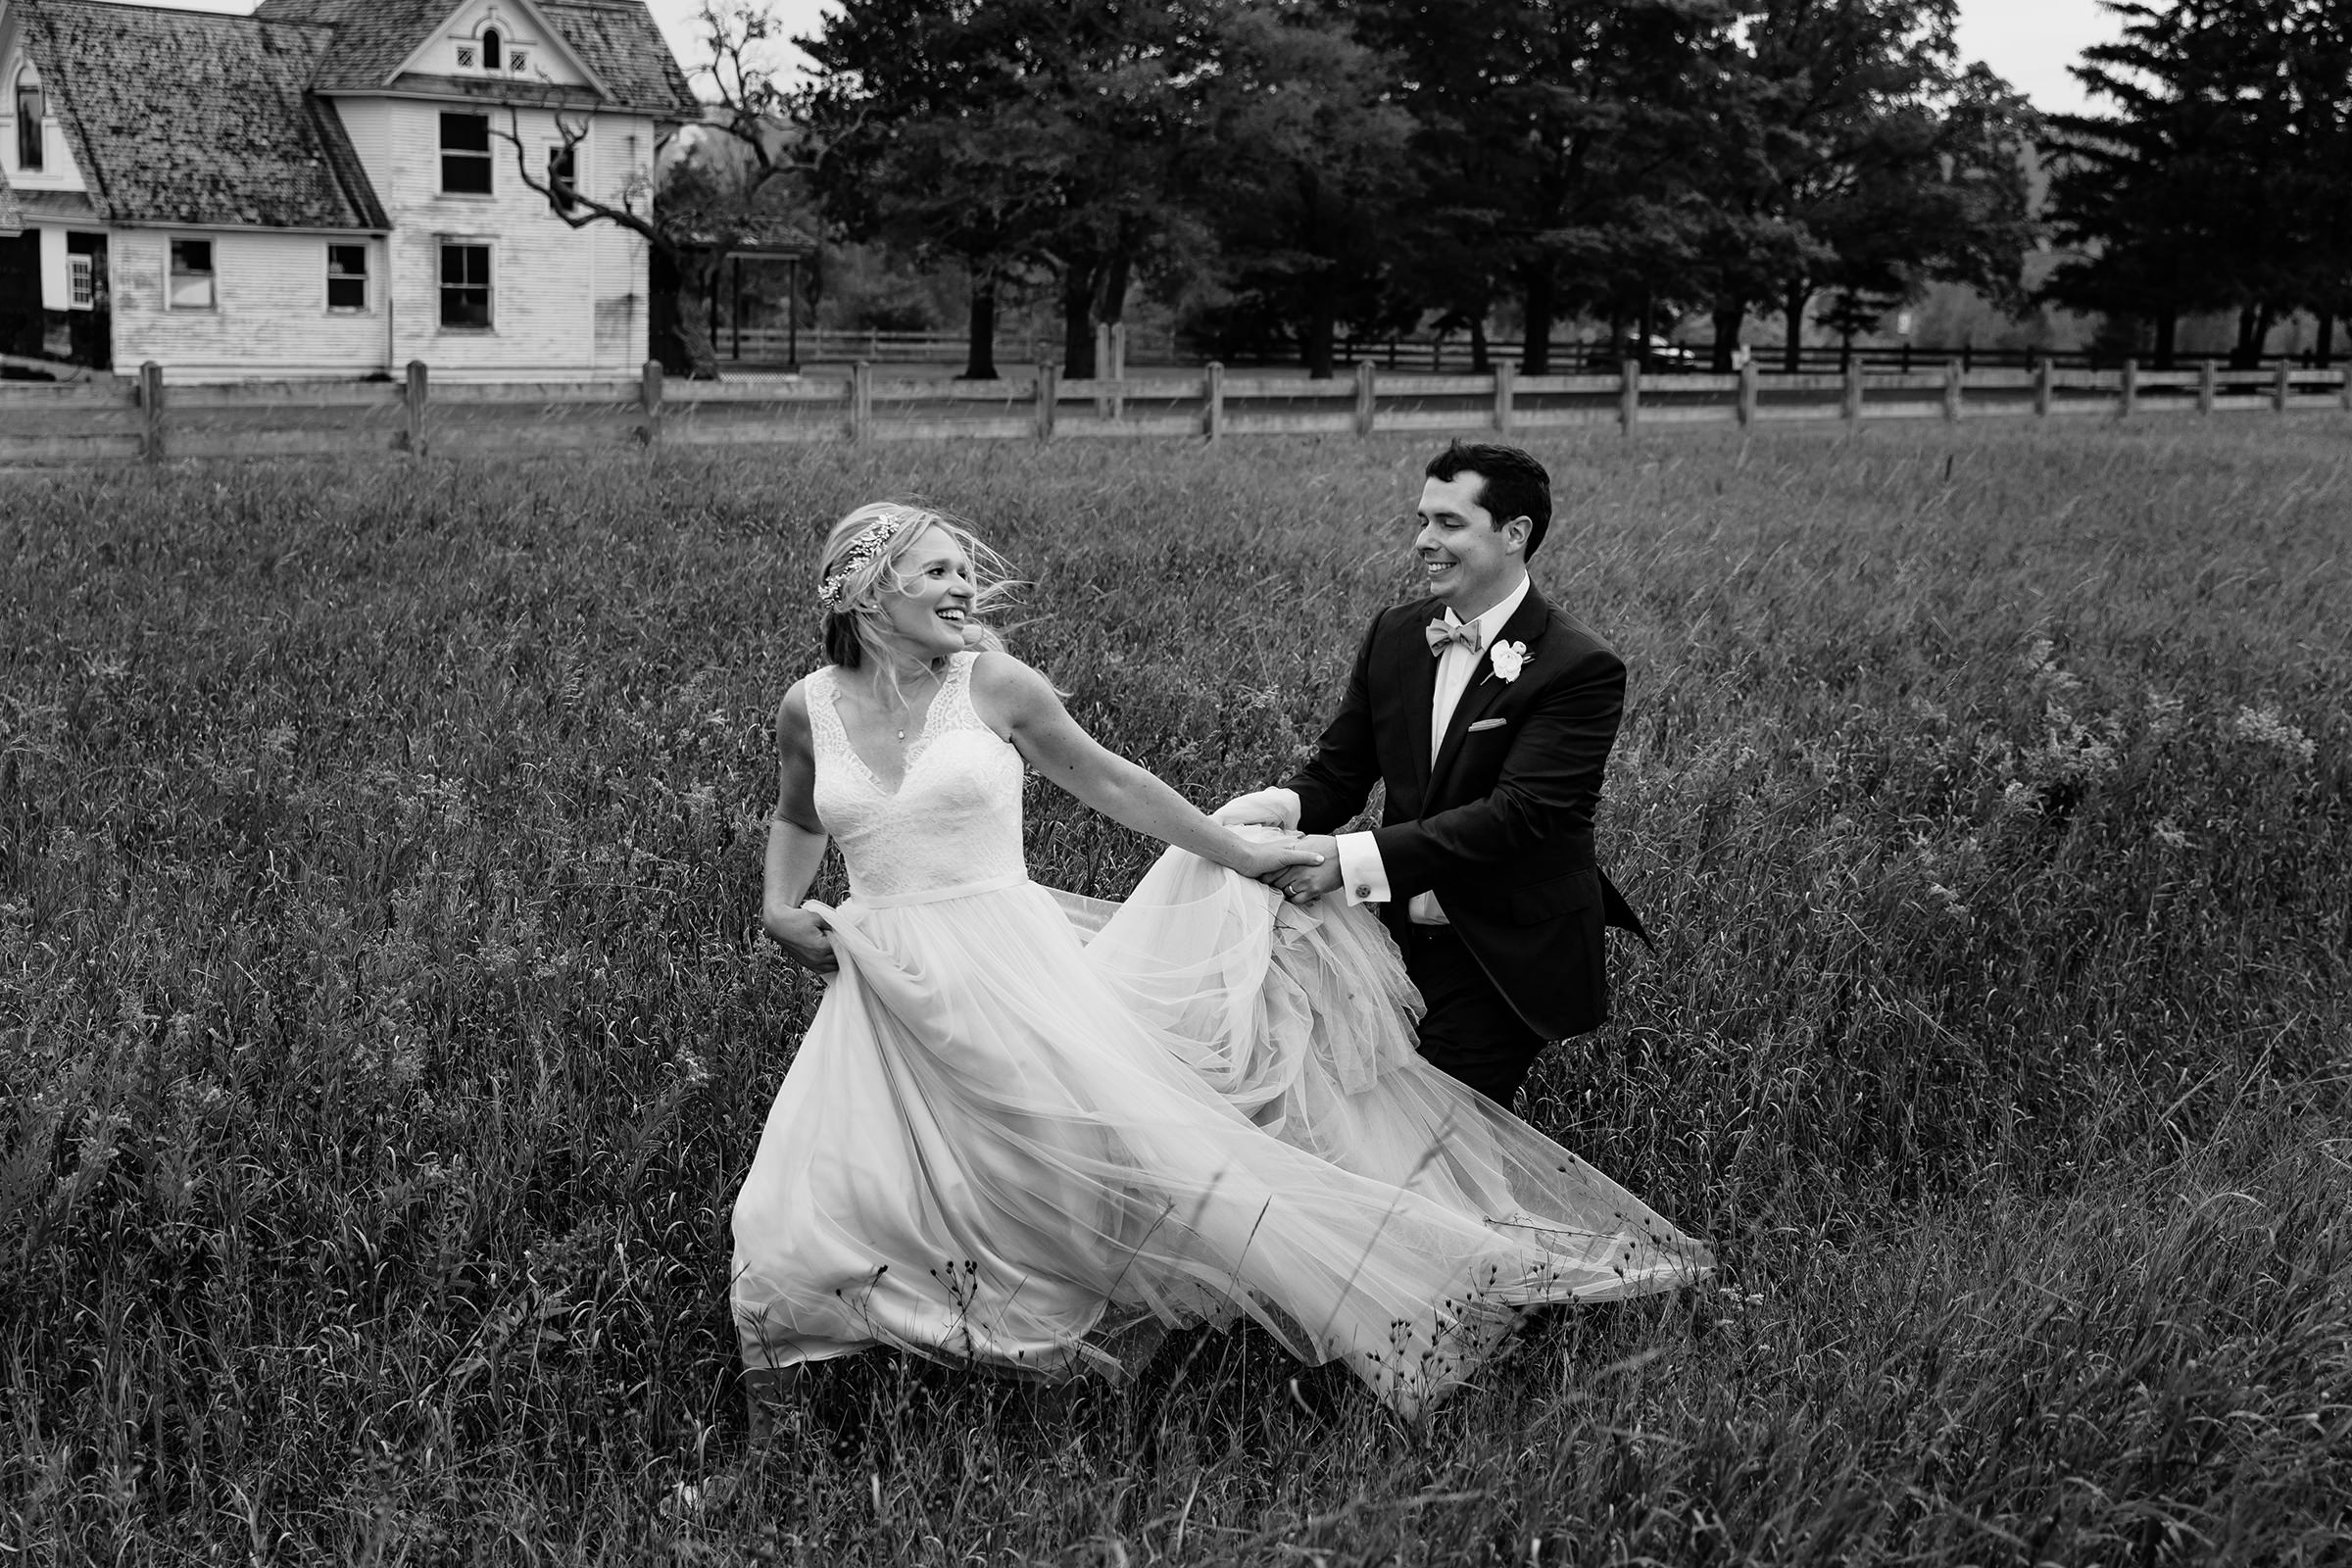 Groom catching running bride in field - photo by Rayan Anastor Photography